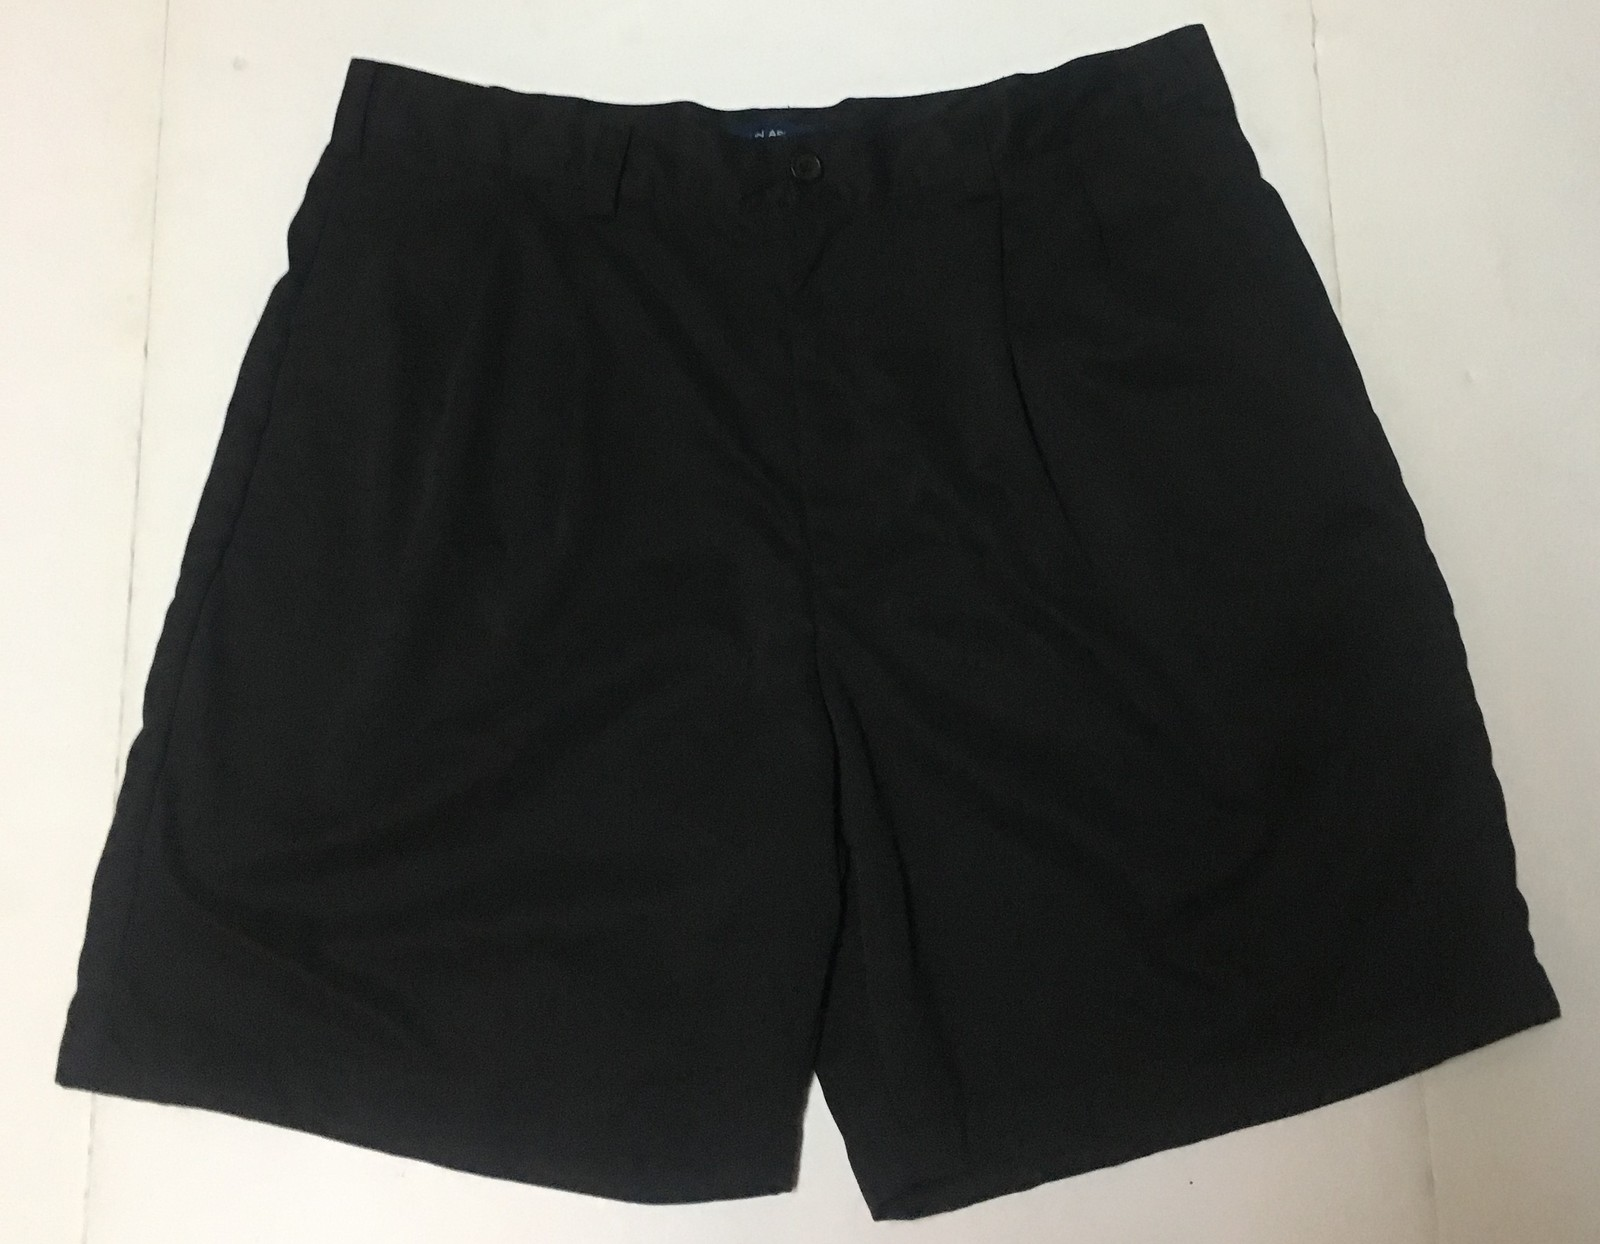 John Ashford Men's Black Shorts Sz 38